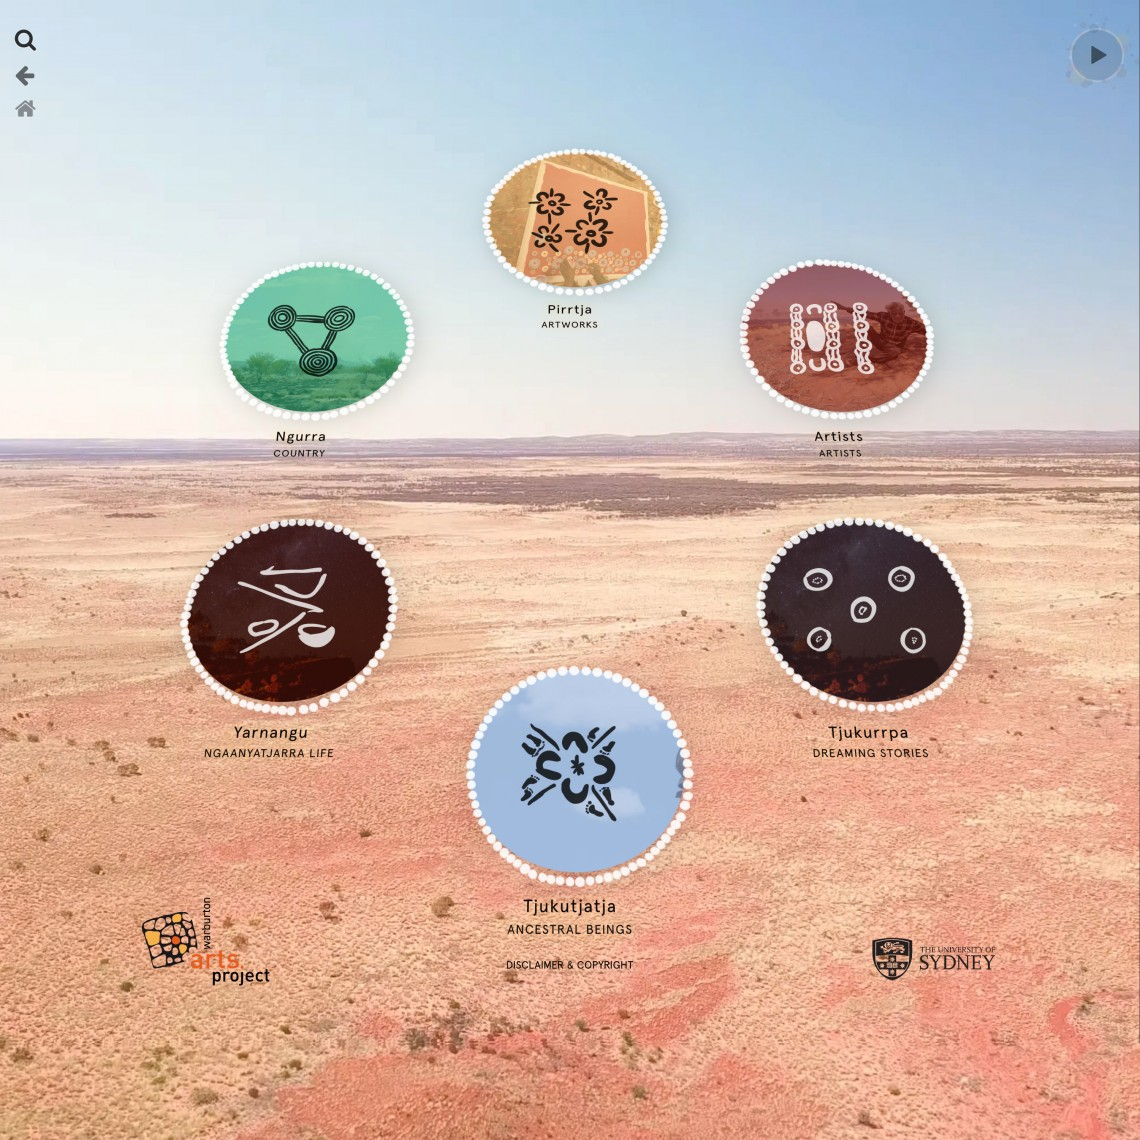 Landing page showing icons and an aerial landscape towards Warburton